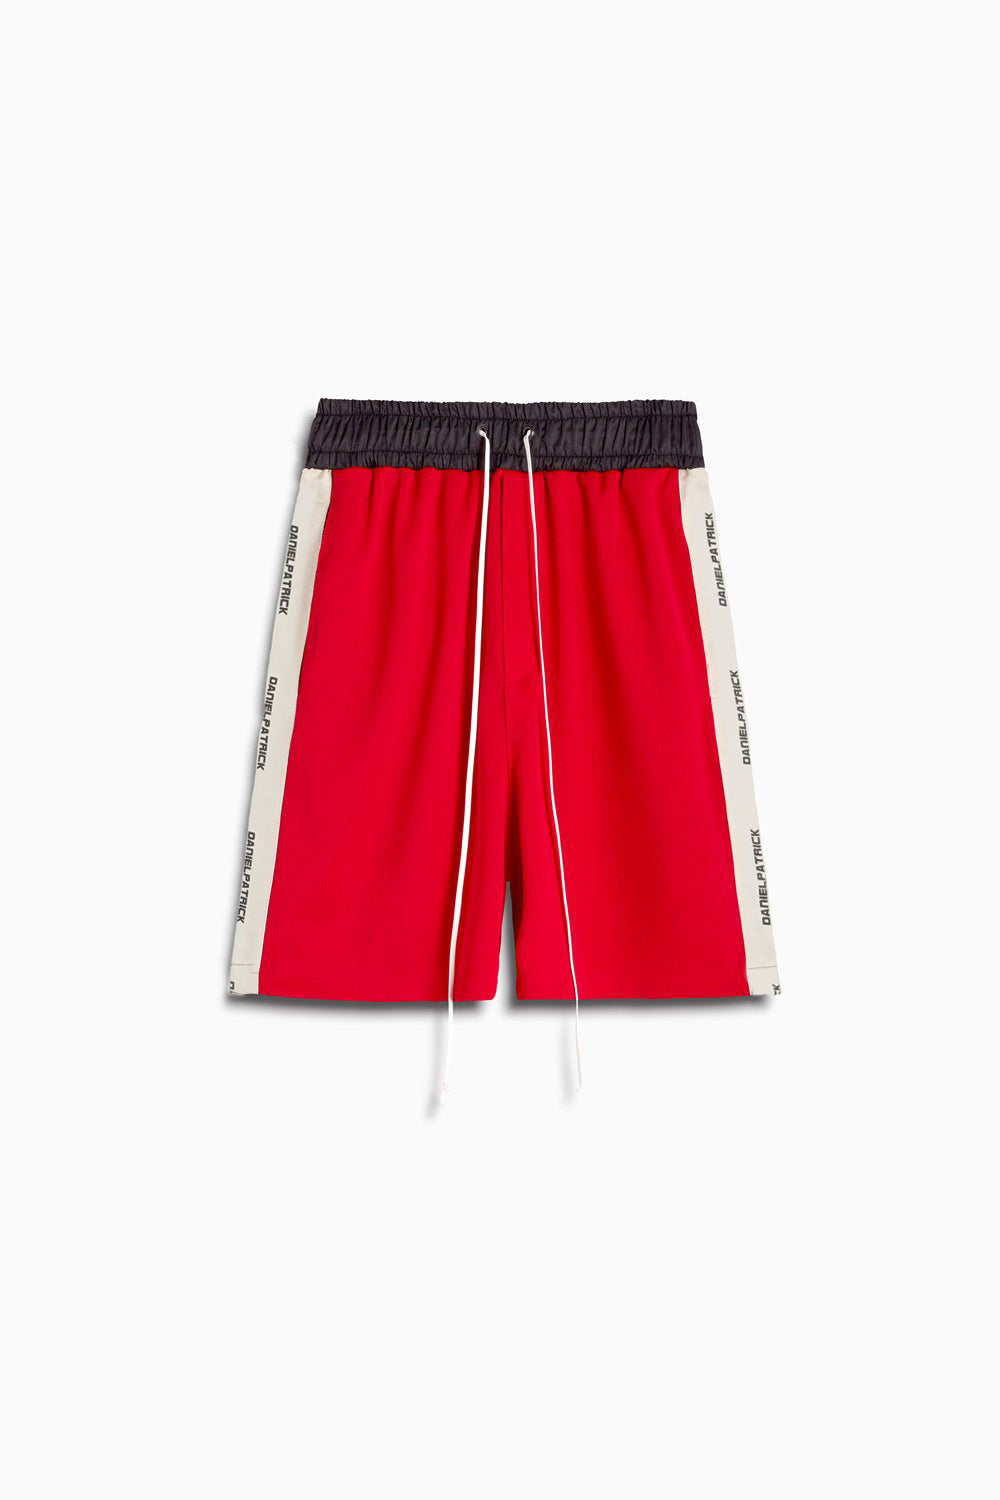 roaming gym short / red + ivory